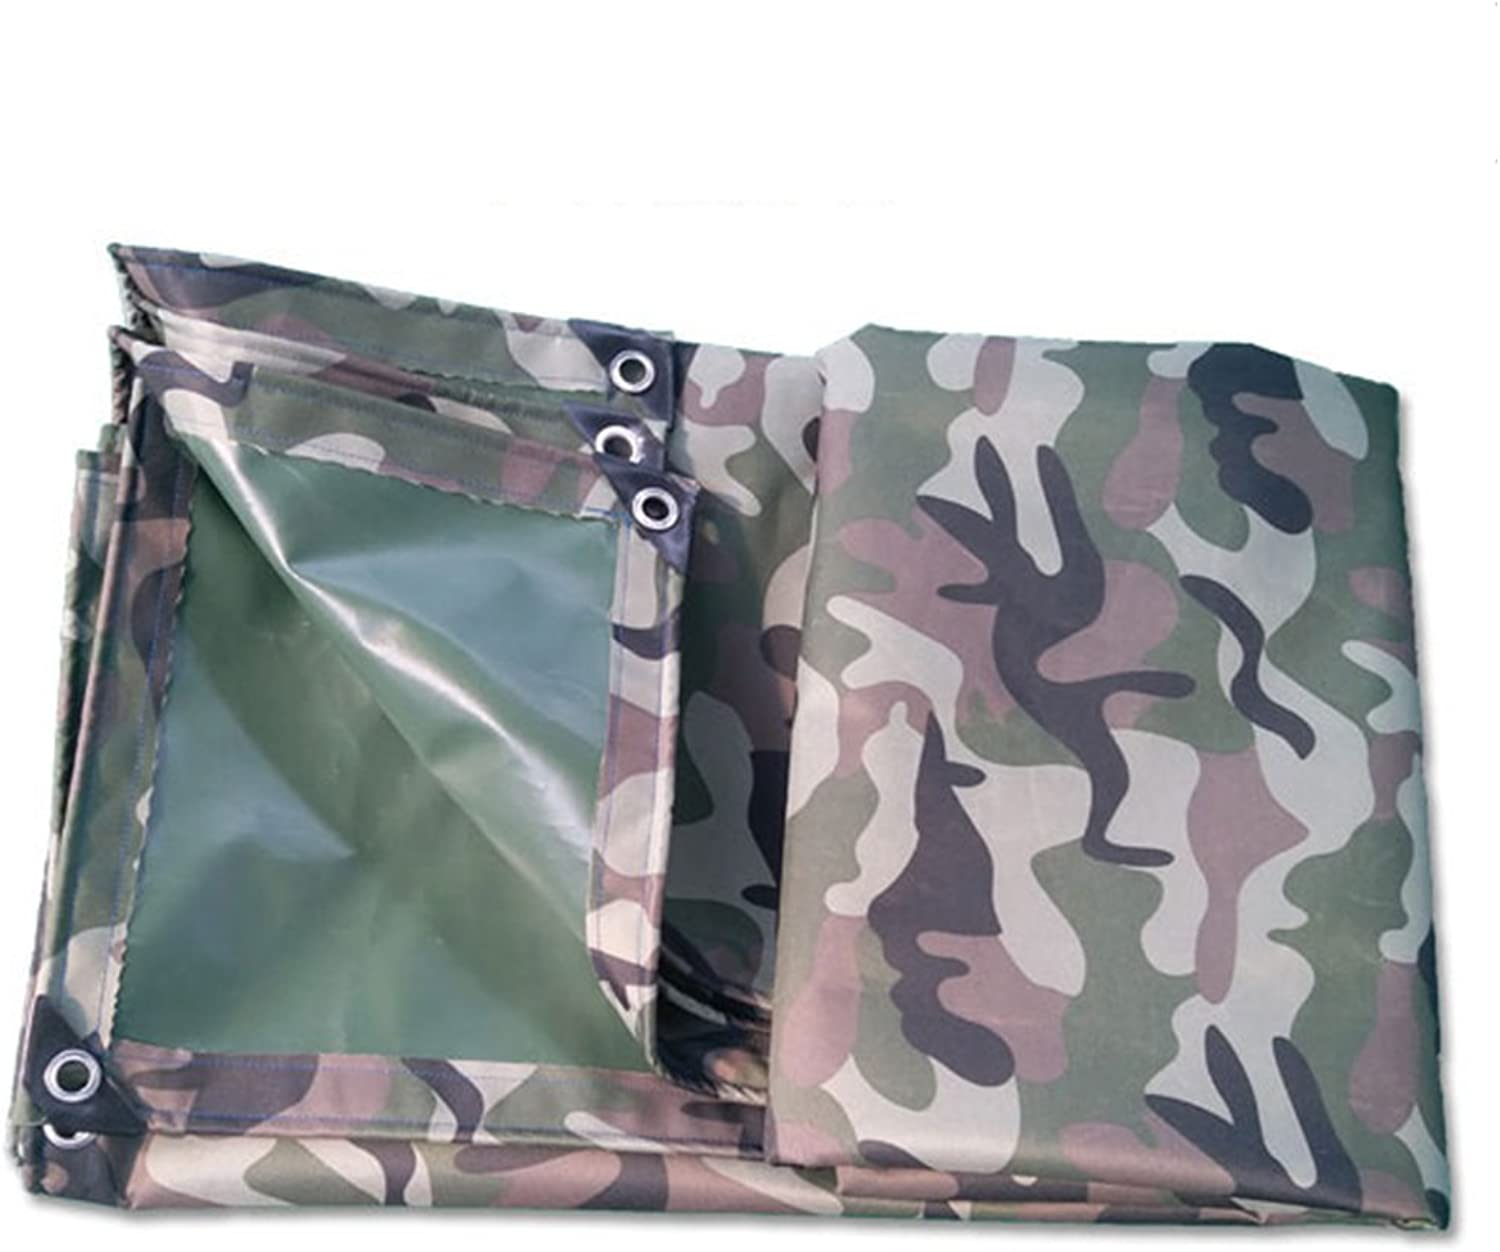 Xuanlindian Rainproof Cloth Waterproof Camouflage Tarpaulin Rainproof Sunscreen Warehouse Cargo Sunshade dust shed Fabric wearResistant AntiOxidation